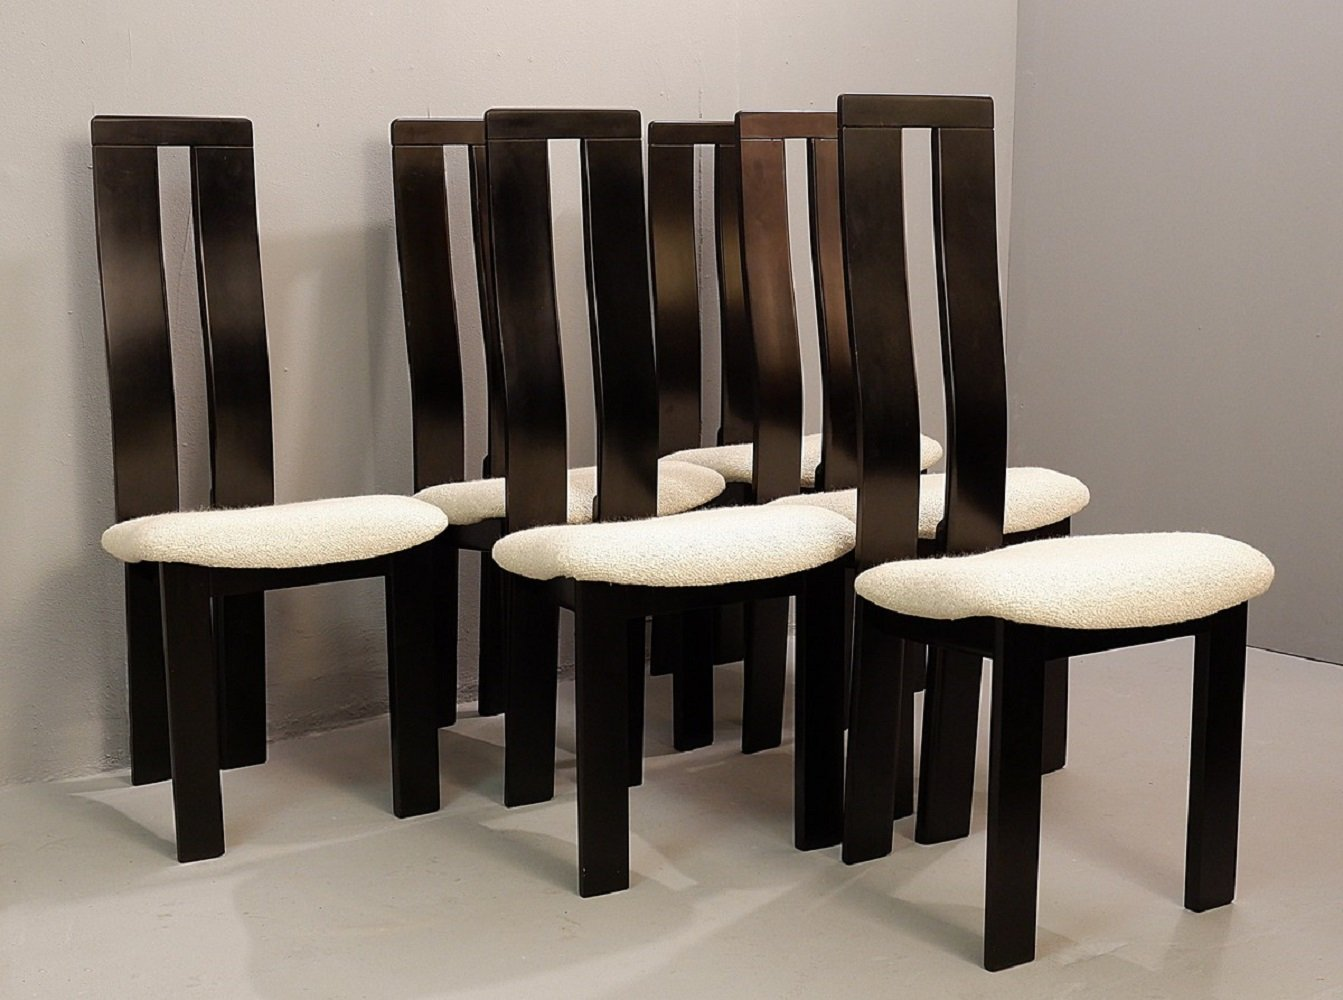 Set of 6 Dining Chairs by Pietro Costantini for Ello, 1970s | #131518